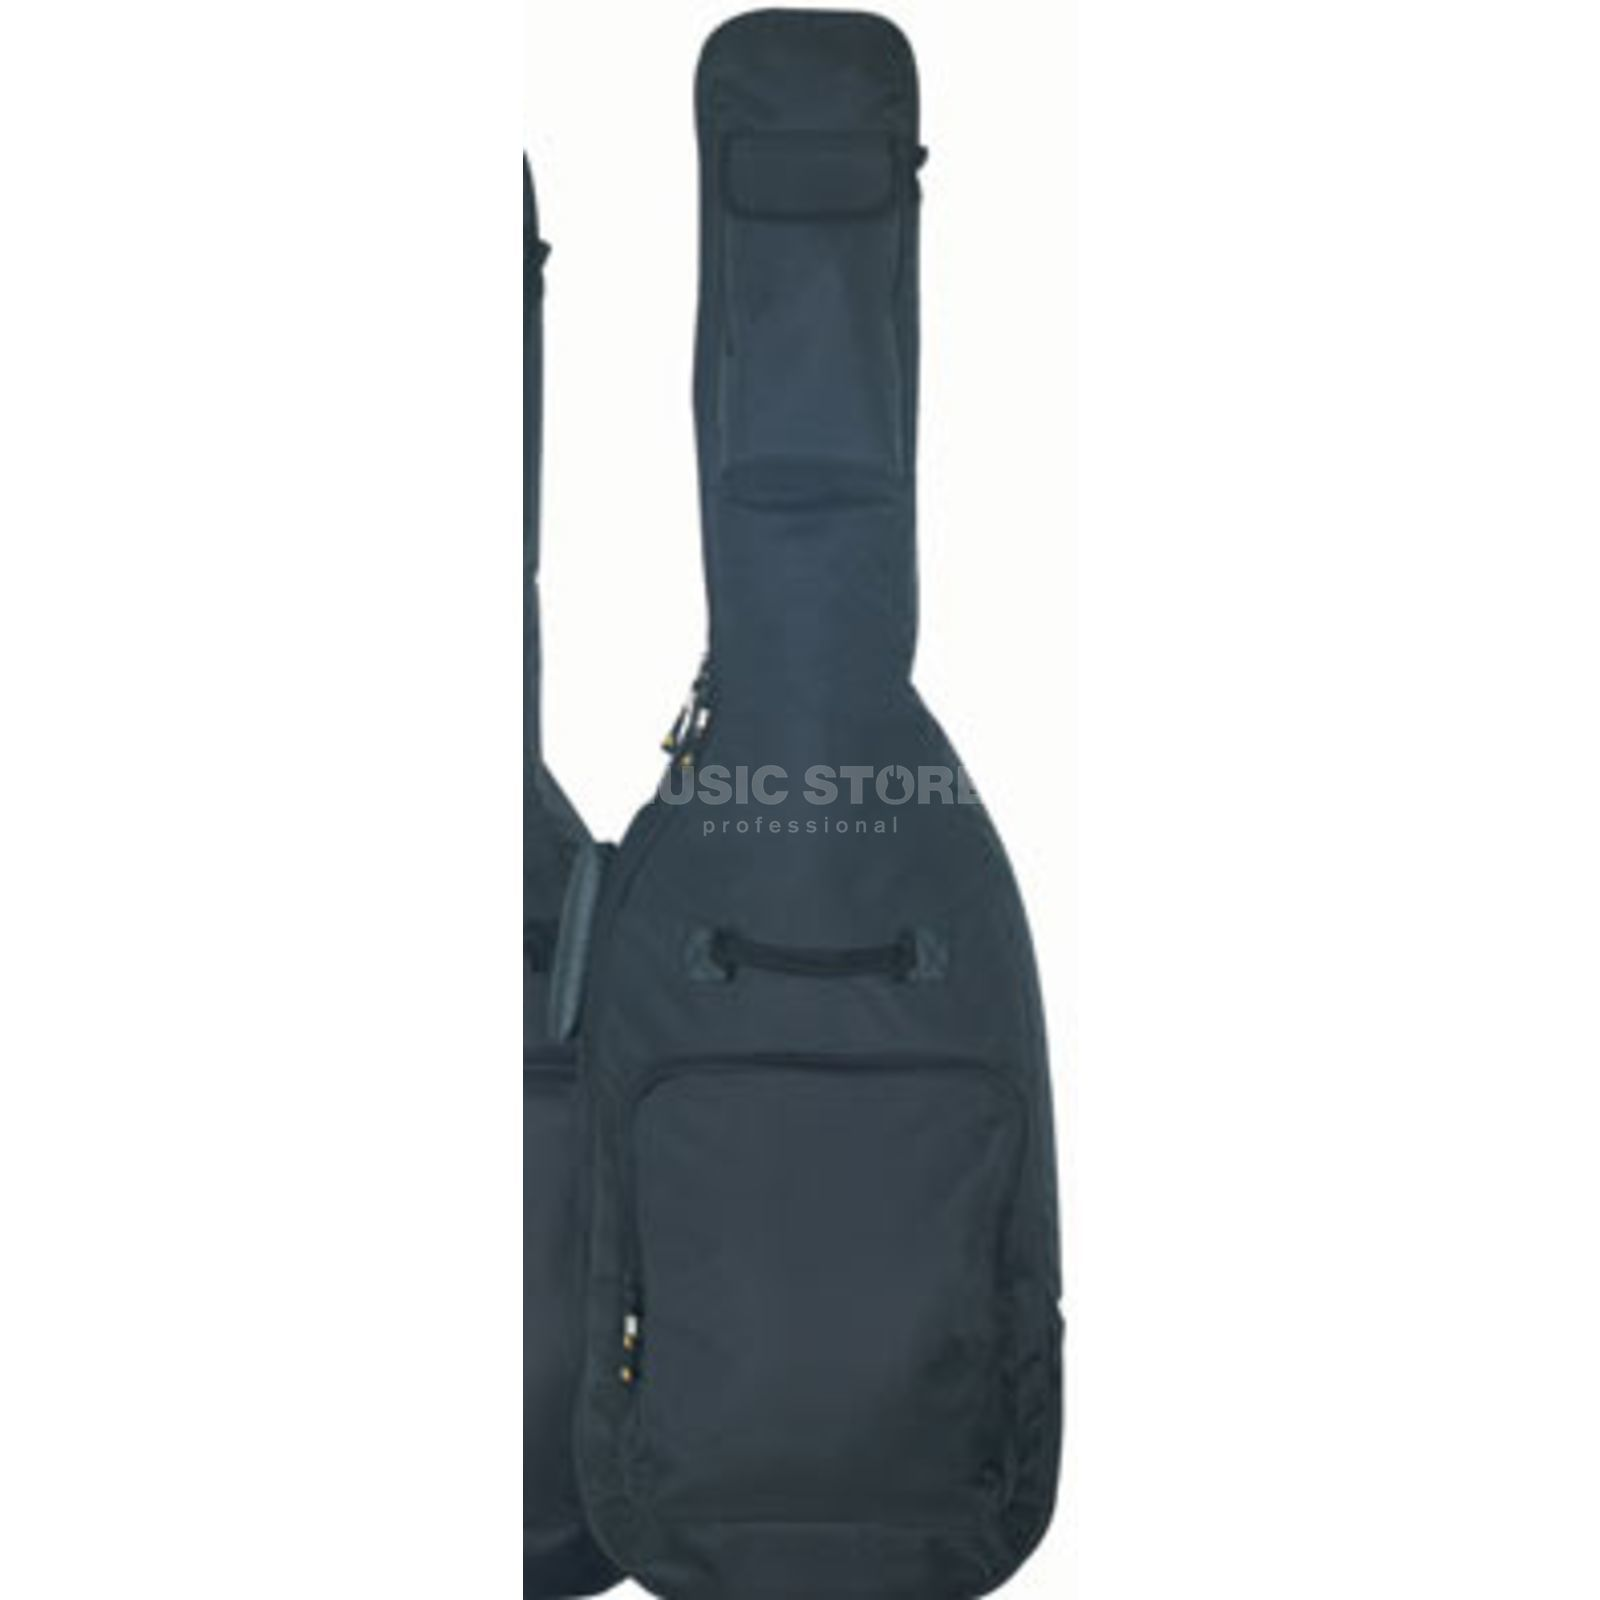 Rockbag Student Line Bass Guitar Gig bag, Nylon, Black Product Image